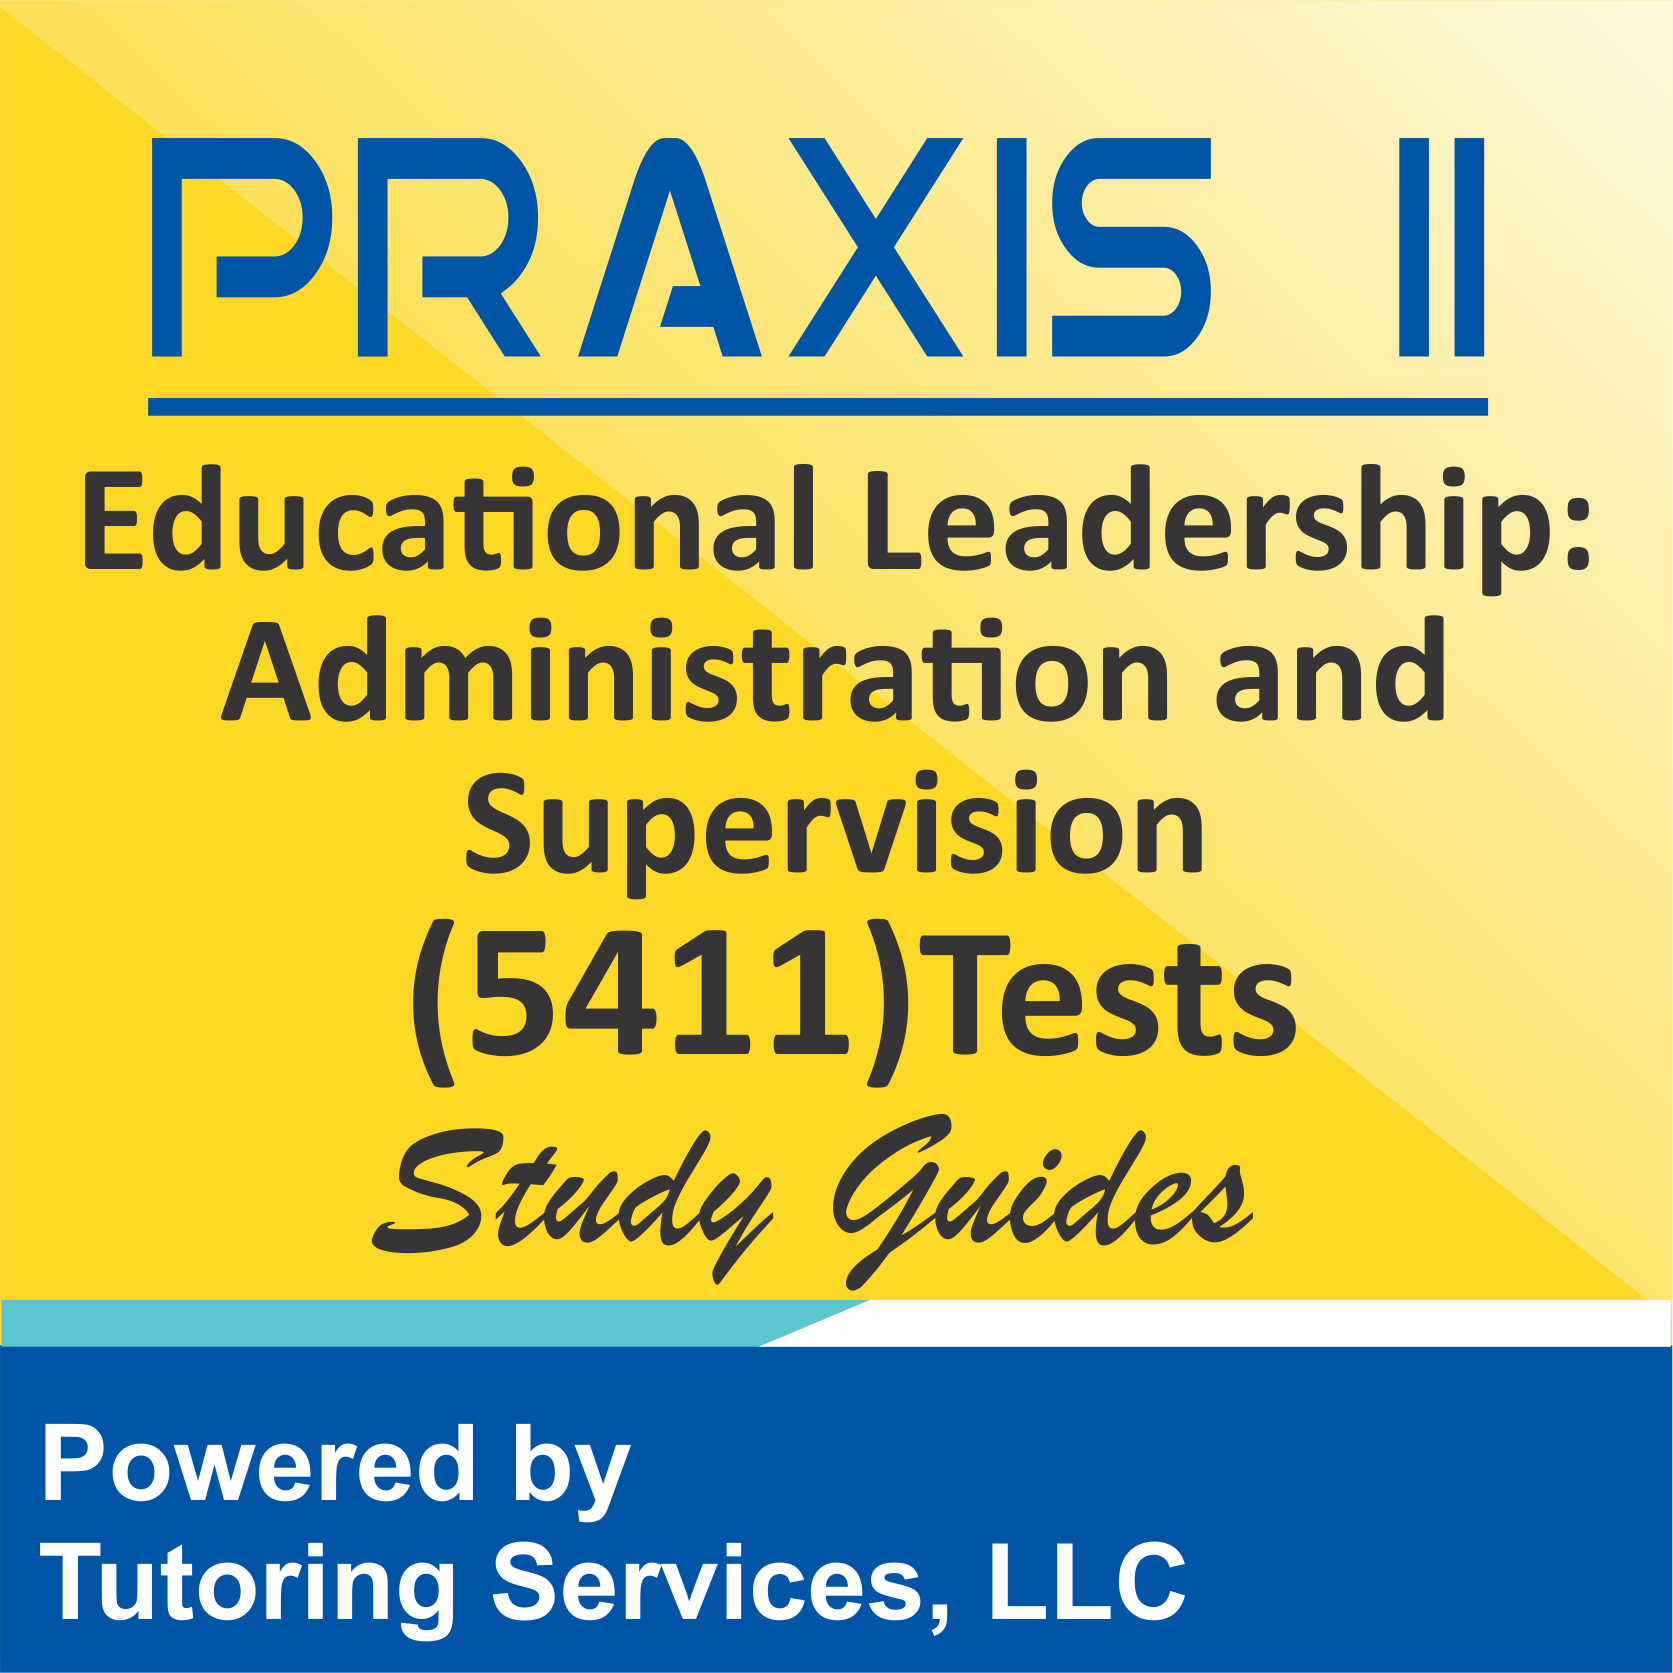 Praxis II Educational Leadership: Administration and Supervision (5411) Examination Syllabus